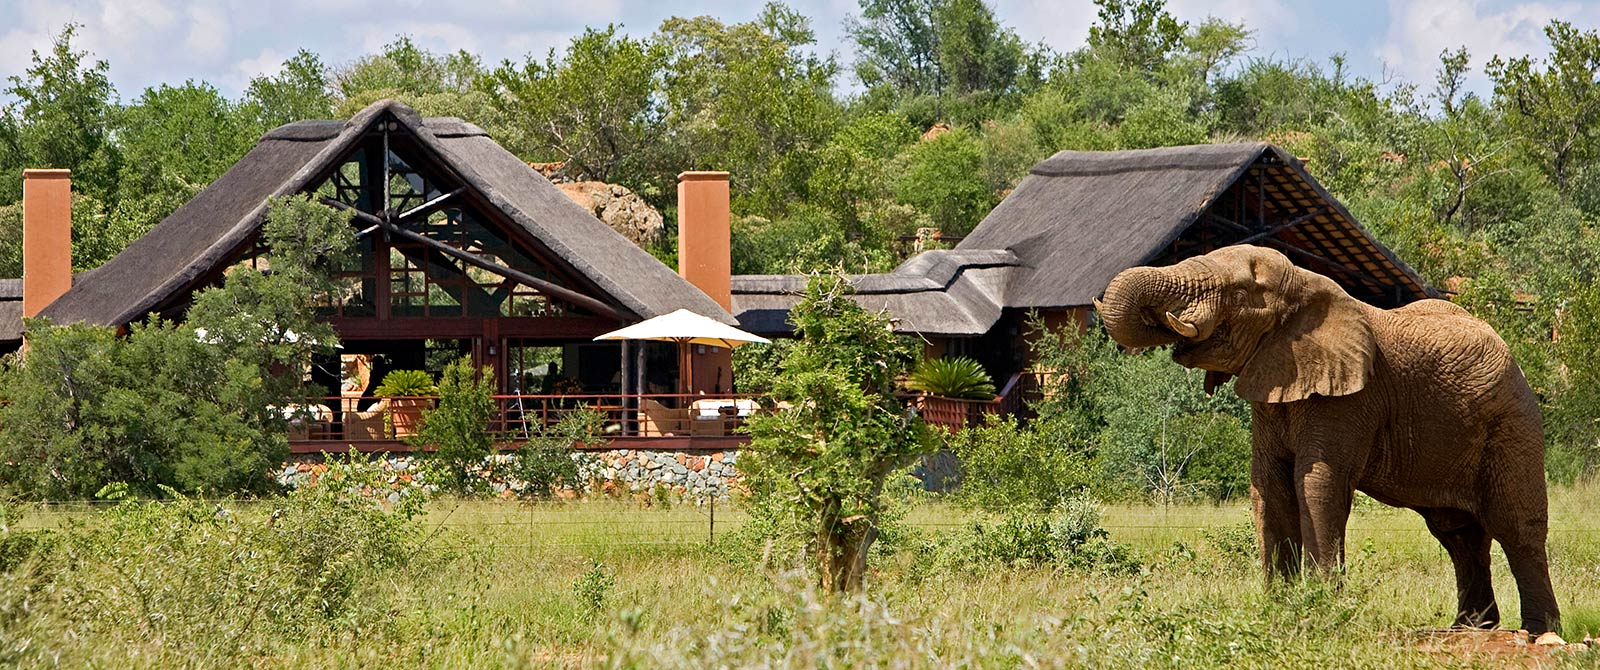 Elephant at Mateya Safari Lodge, Madikwe Game Reserve